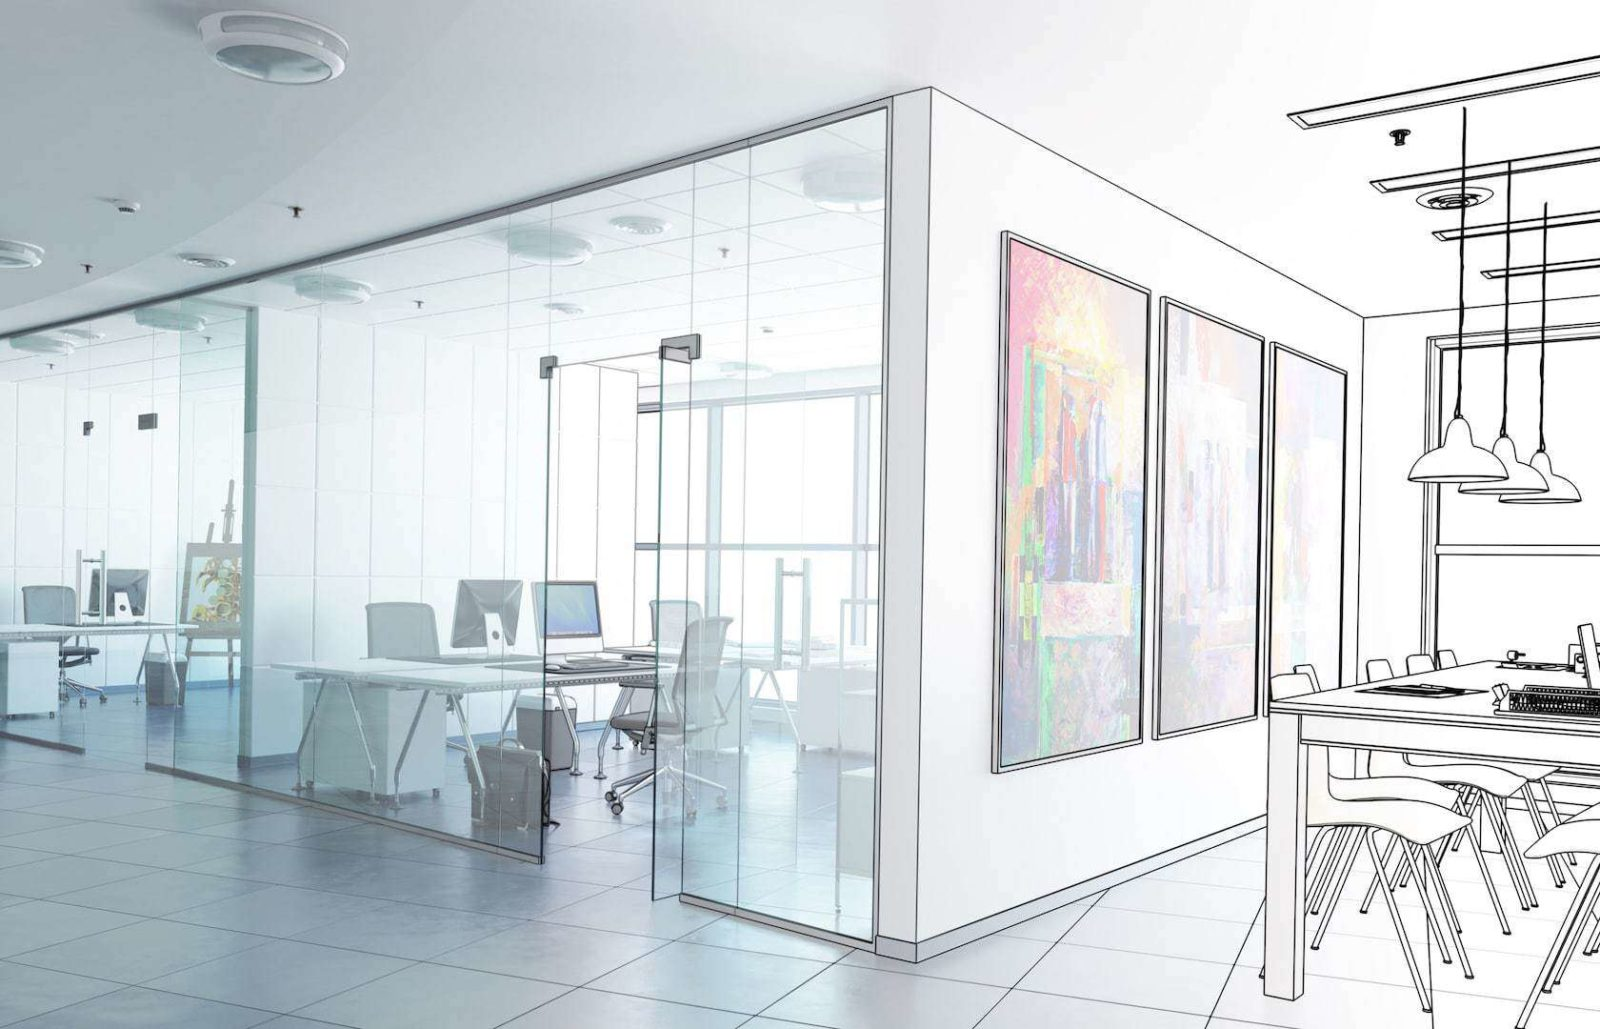 MEP office renovation tips sketch of renovating office space